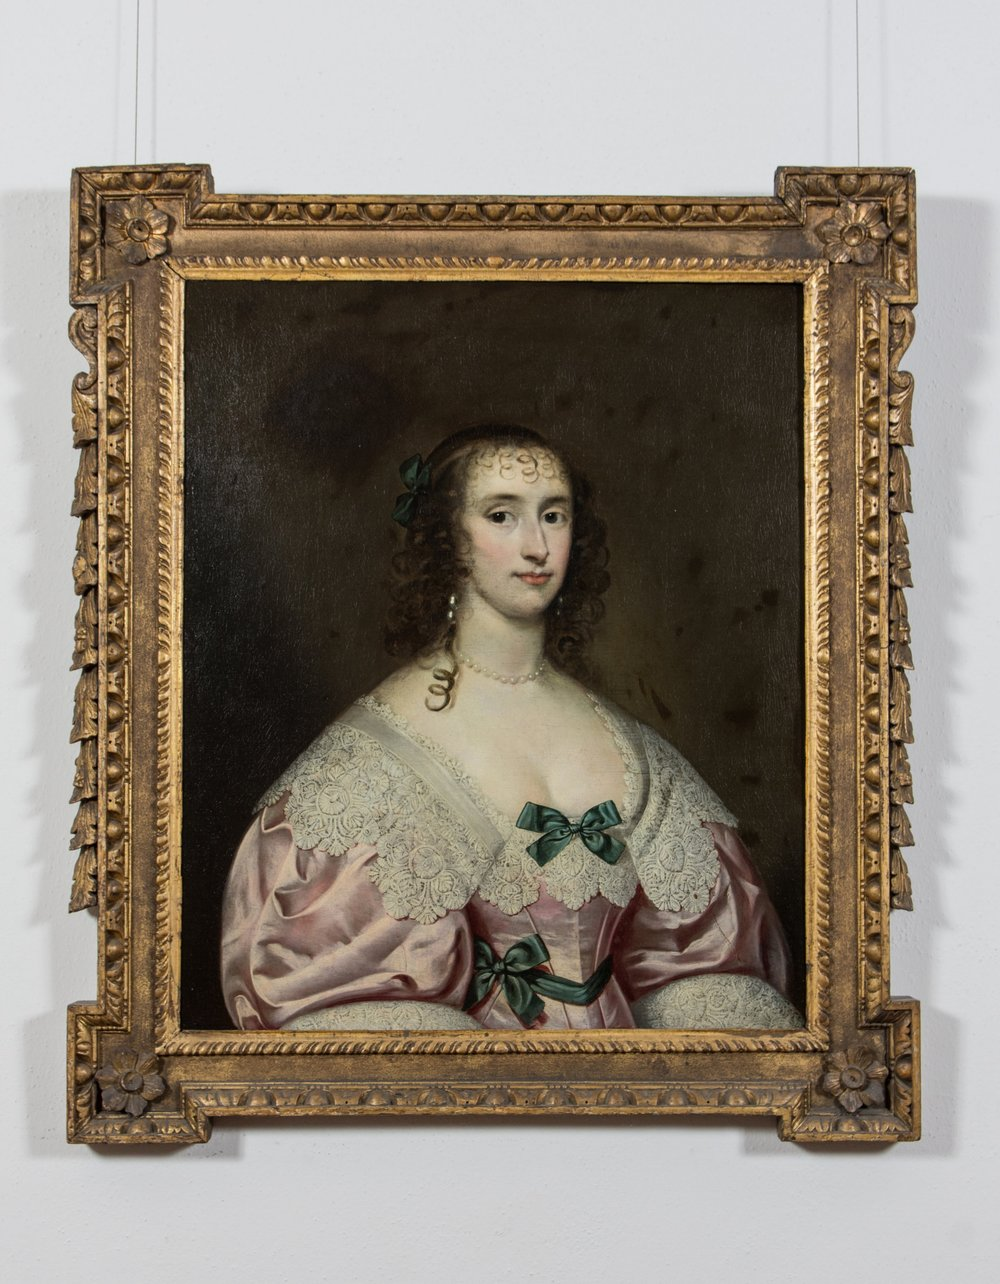 Portrait of a Nobleman, wearing a pink dress, with lace color